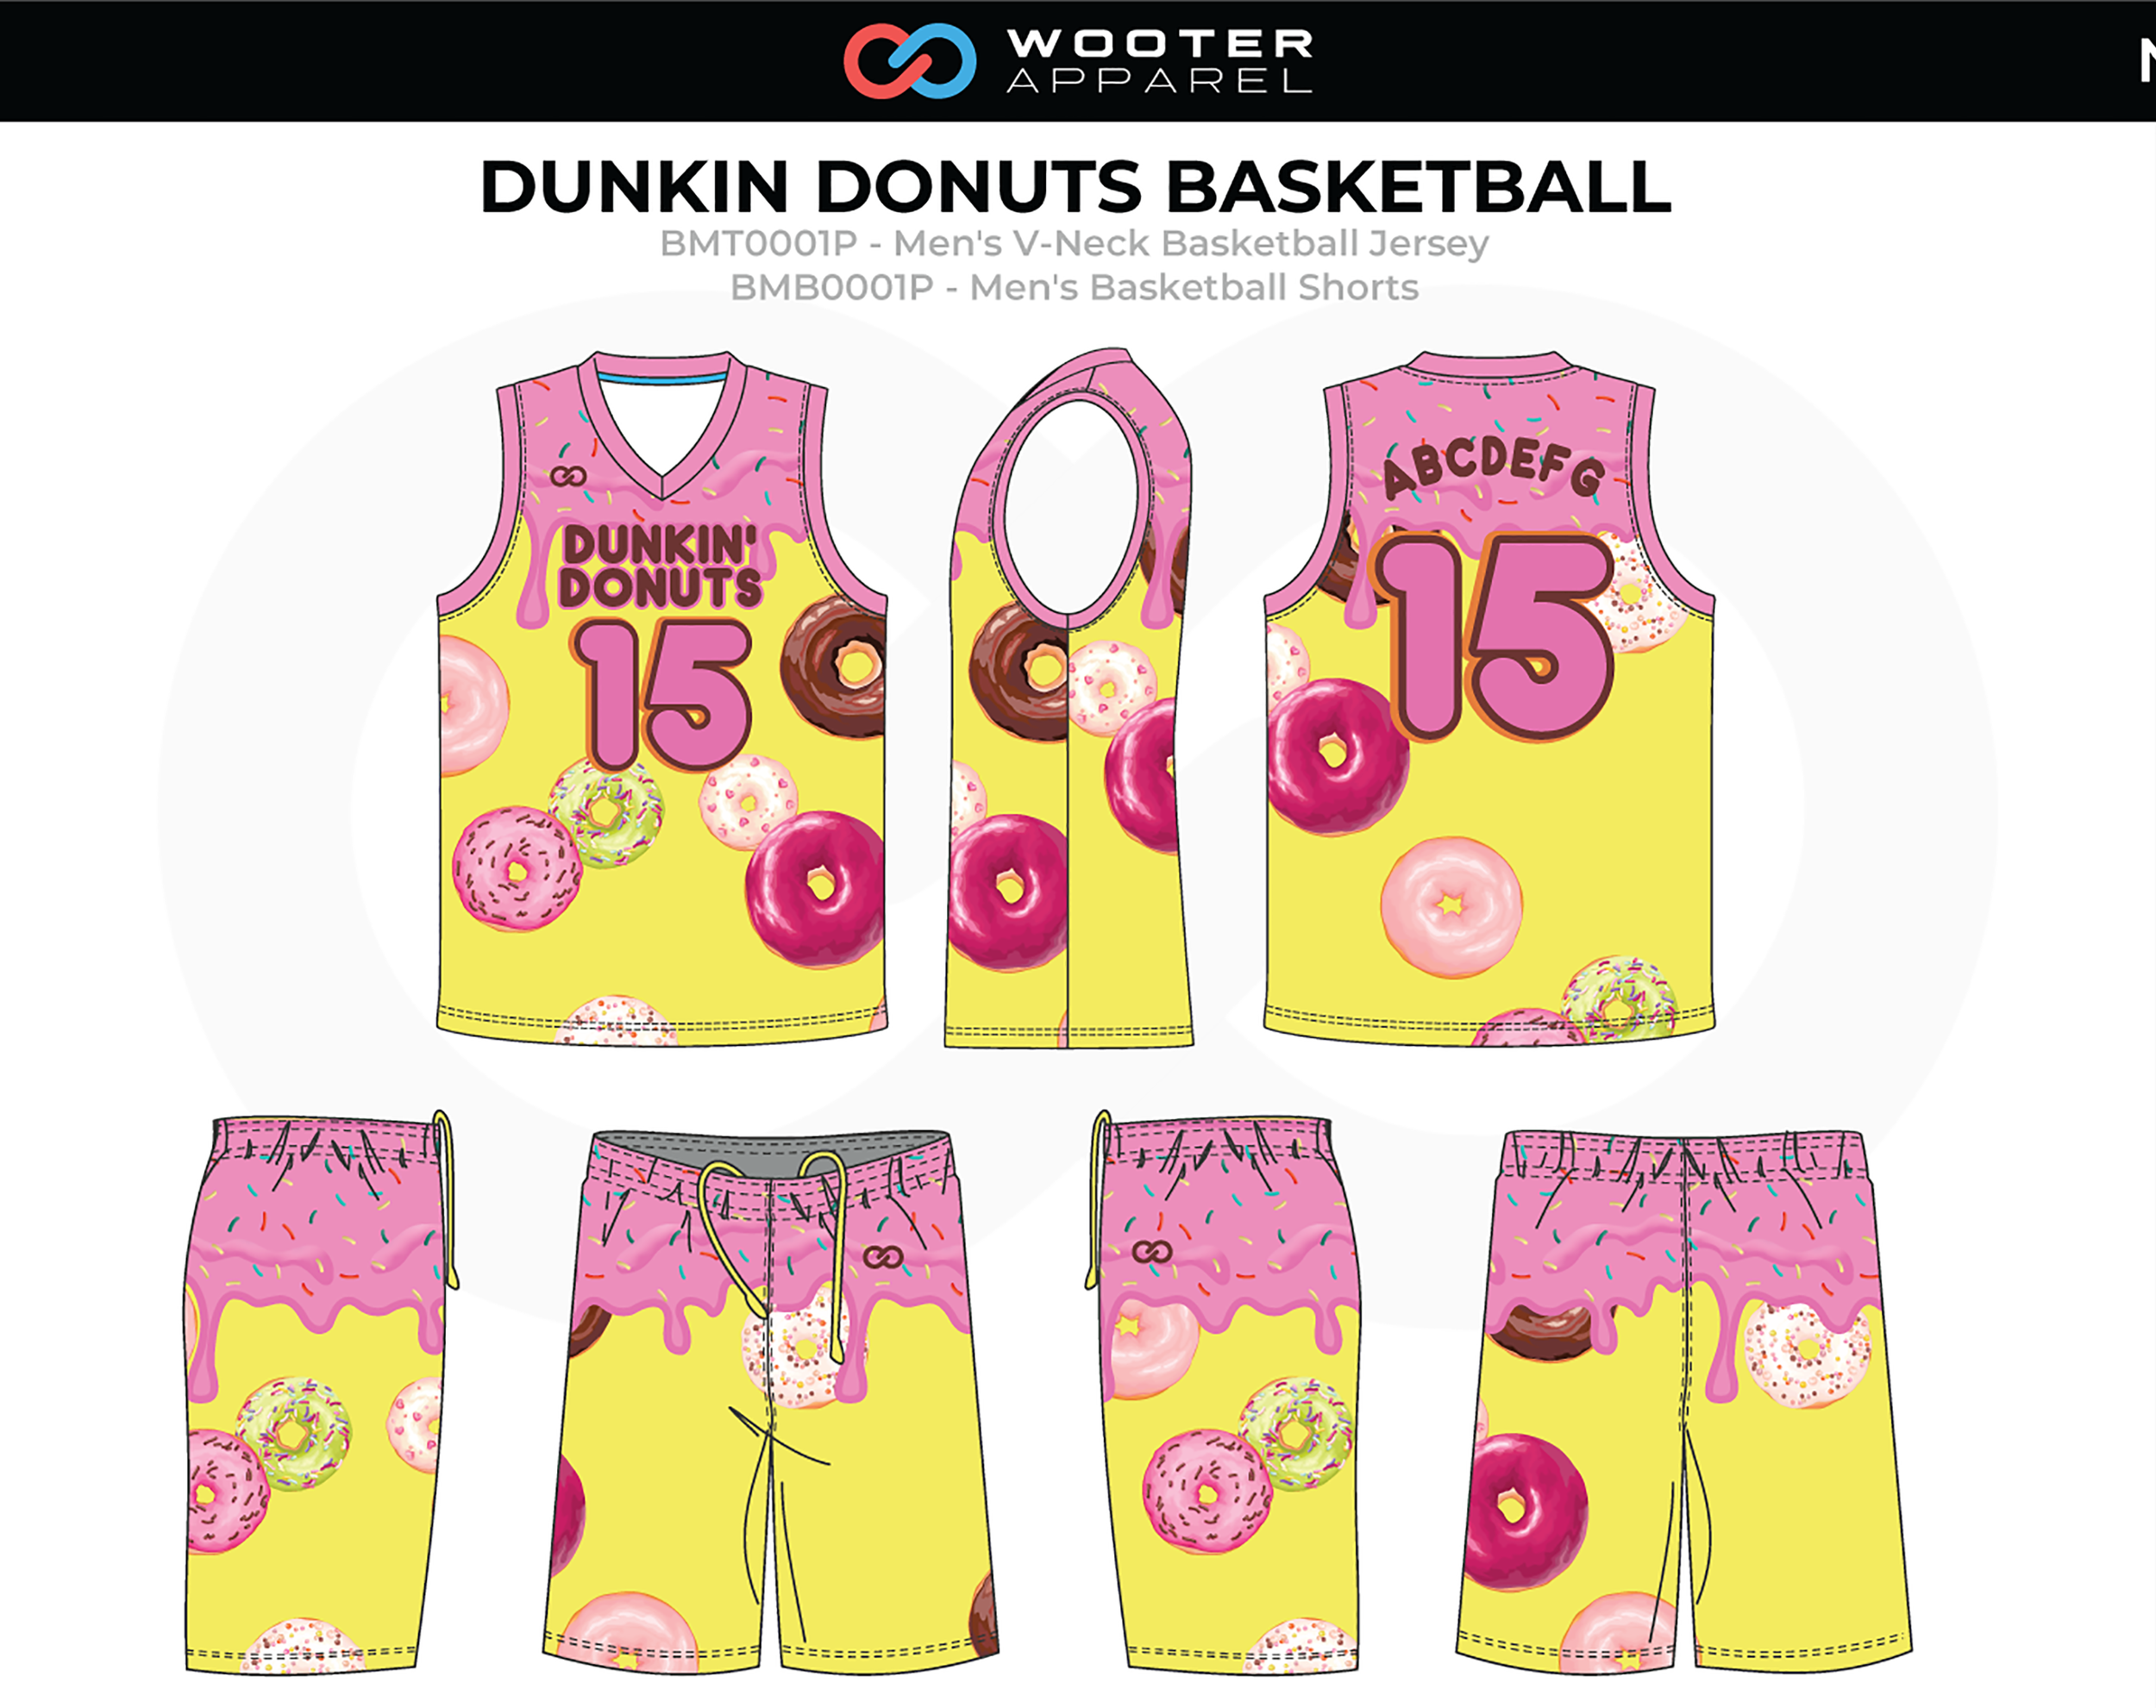 DUNKIN DONUTS Yellow Pink Brown Men's V-Neck Basketball Uniform, Jersey and Shorts